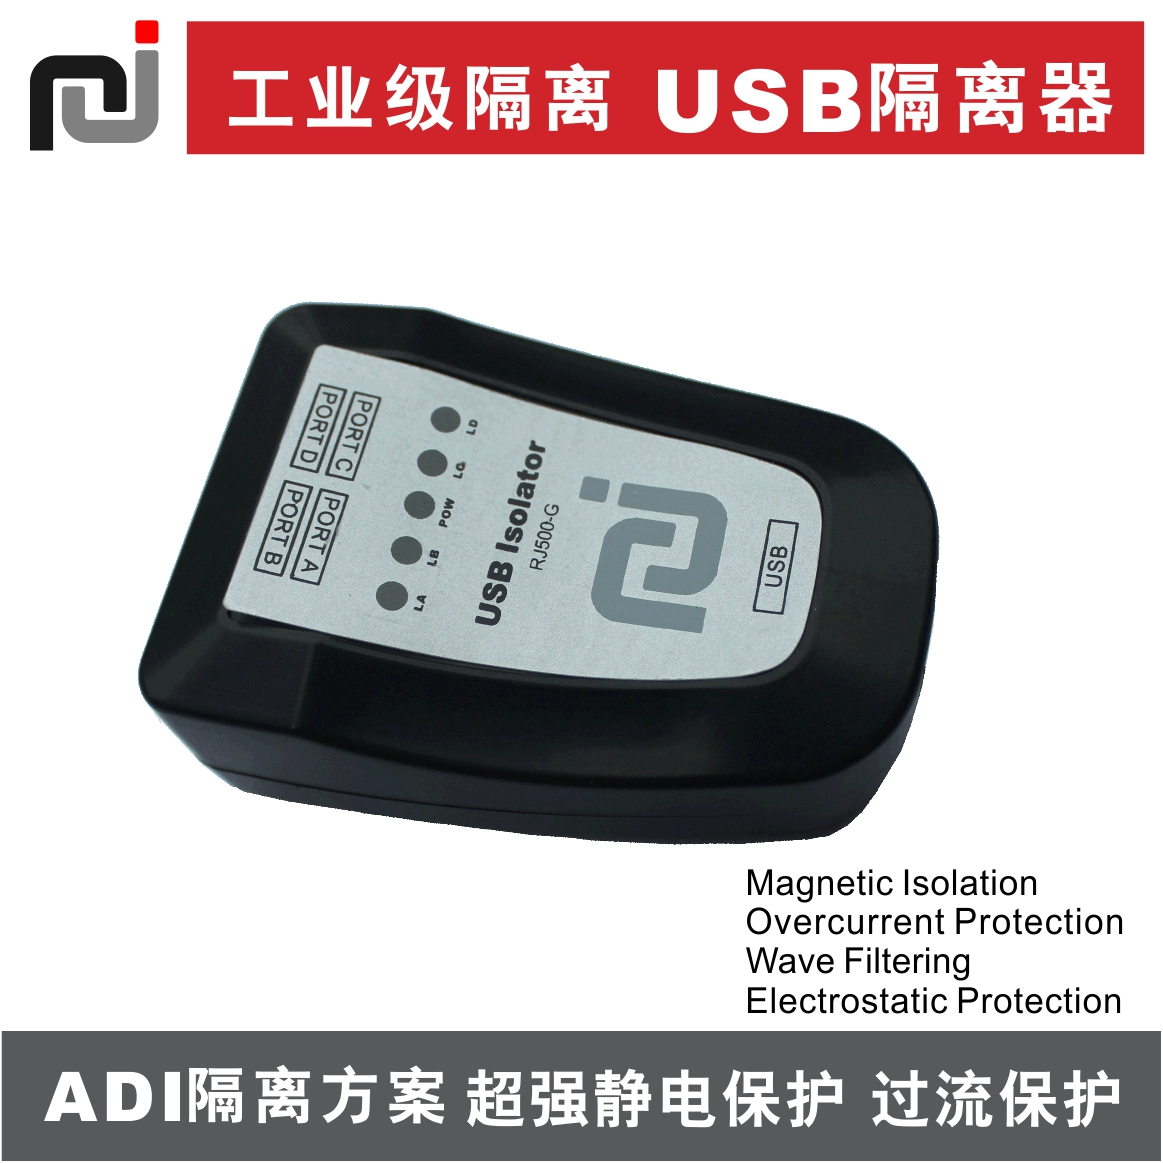 USB Isolator / Digital Isolator, /usb to USB, Isolated /usb Hub / Signal Power, Audio Isolation